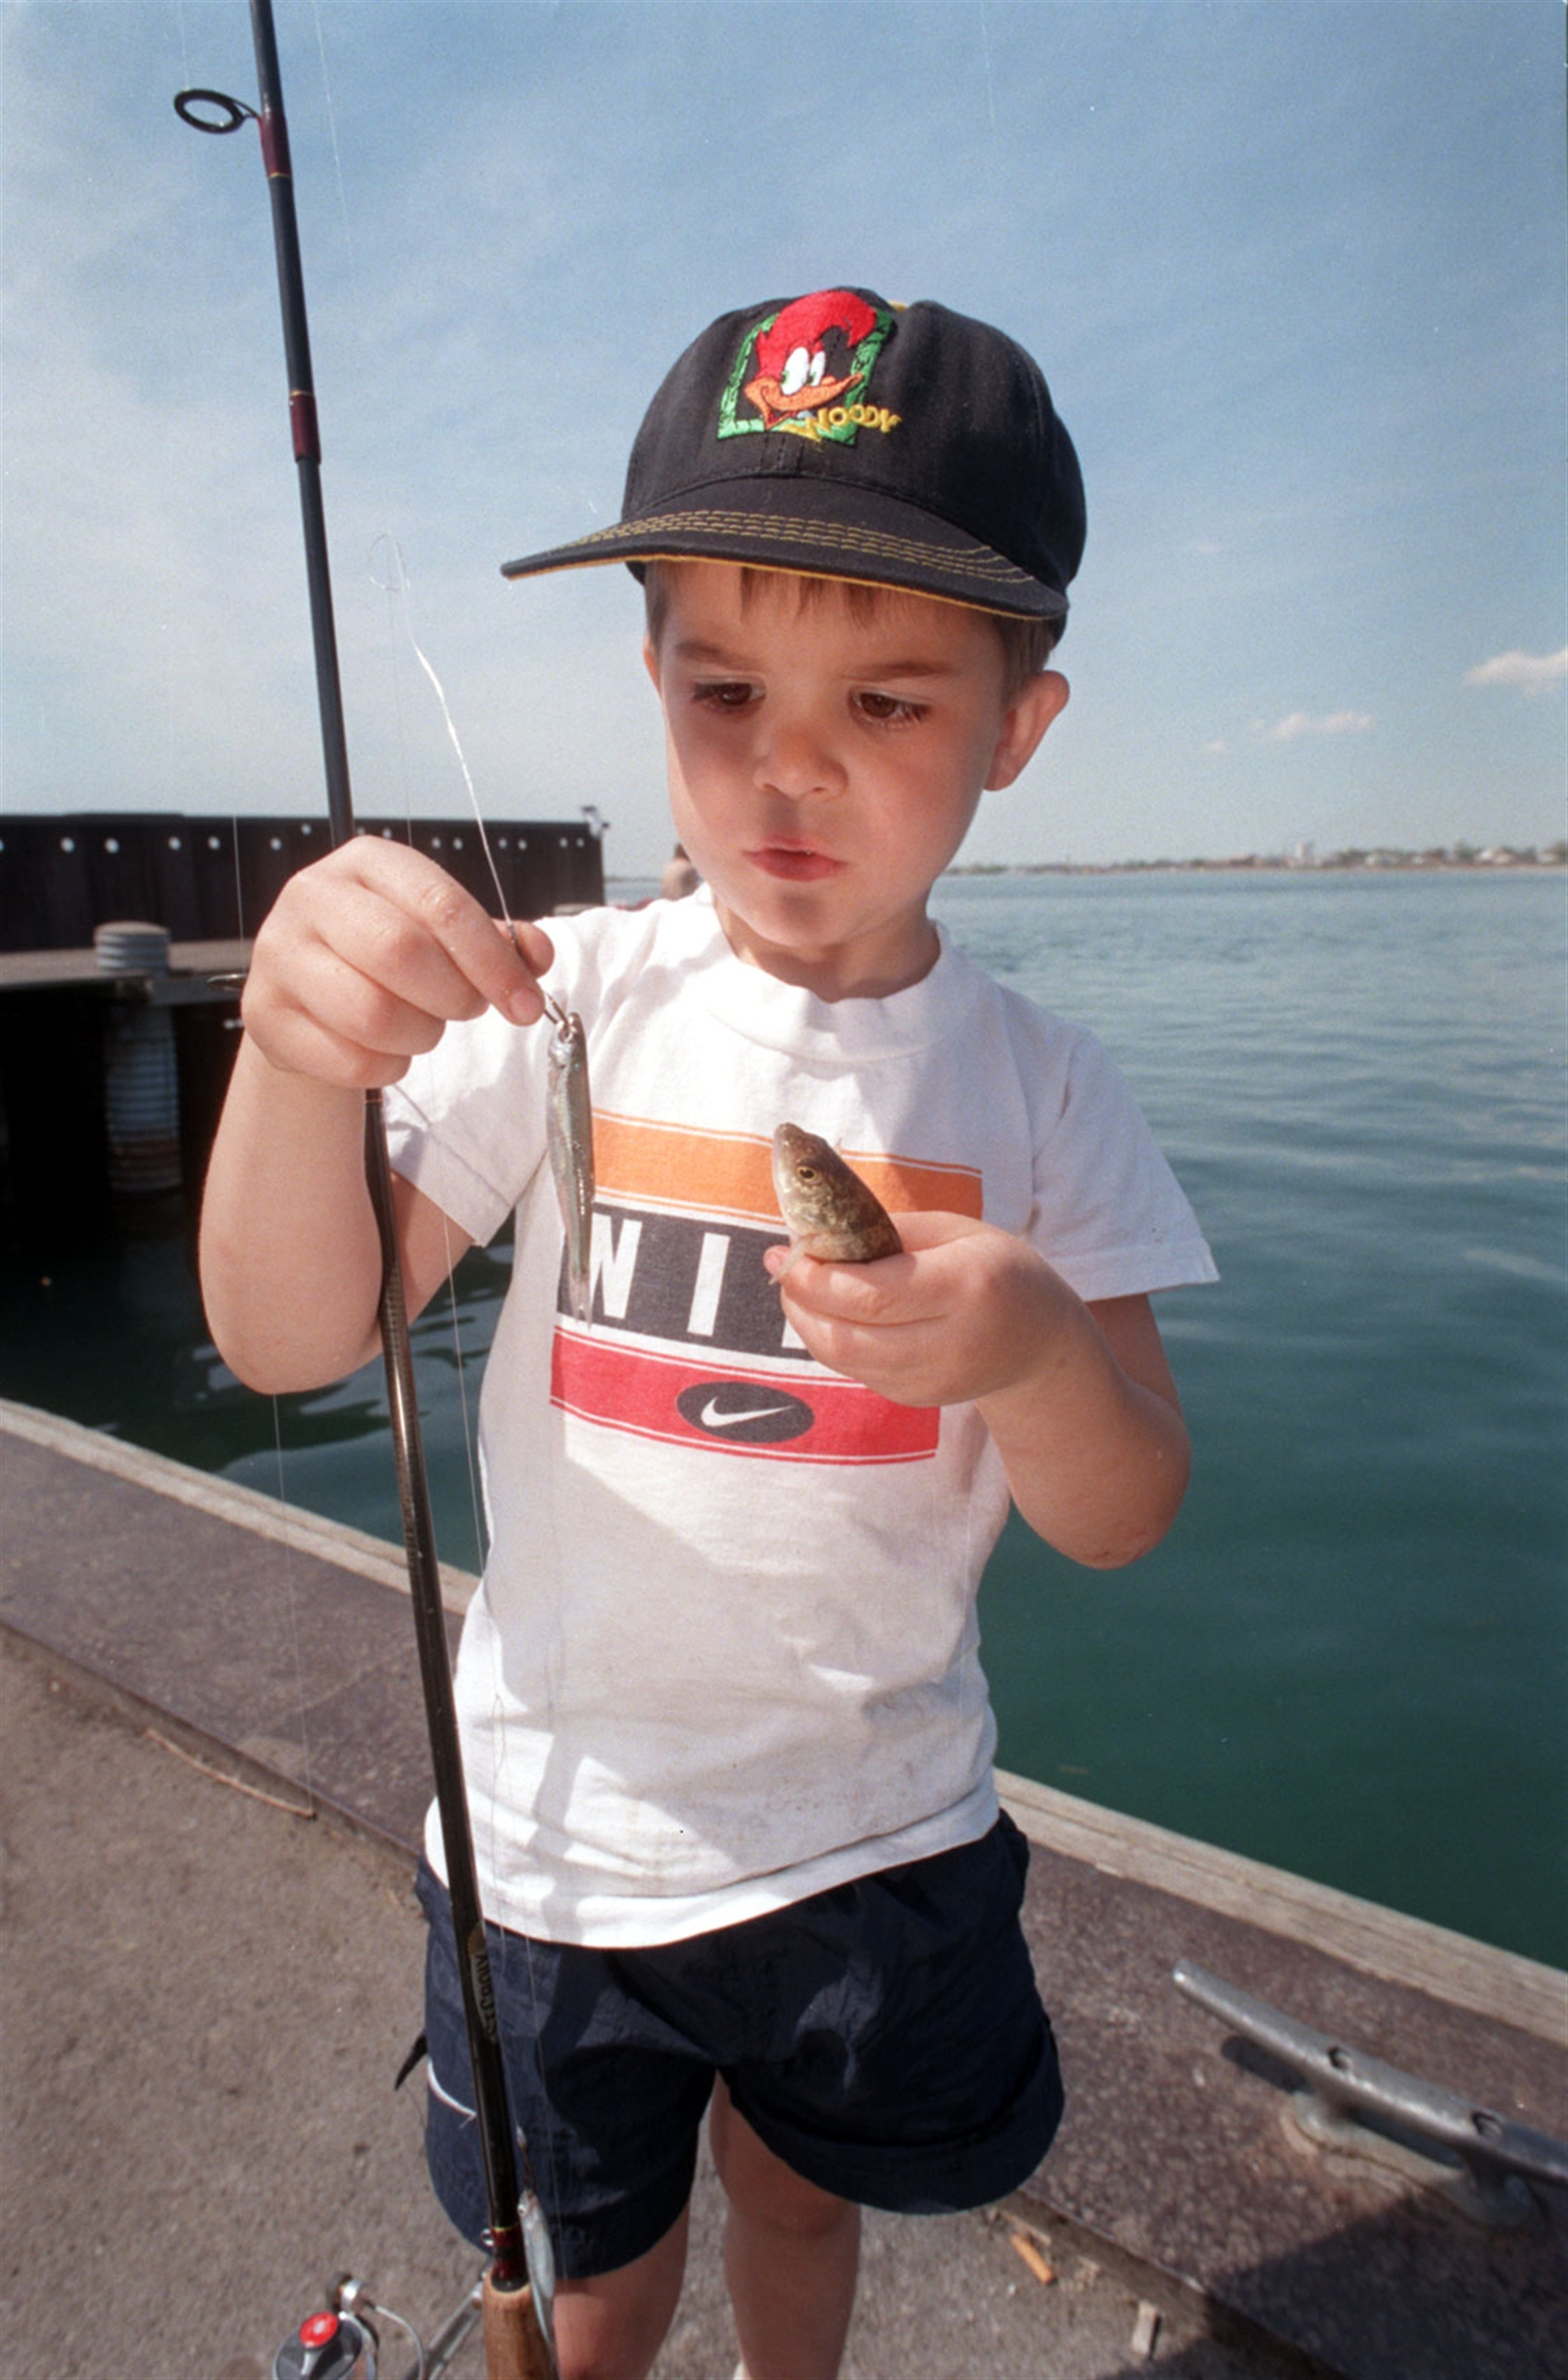 From June 2013: Devin Kiblin, 4, of Buffalo, checks a small perch he caught fishing off the Ontario Street boat landing.